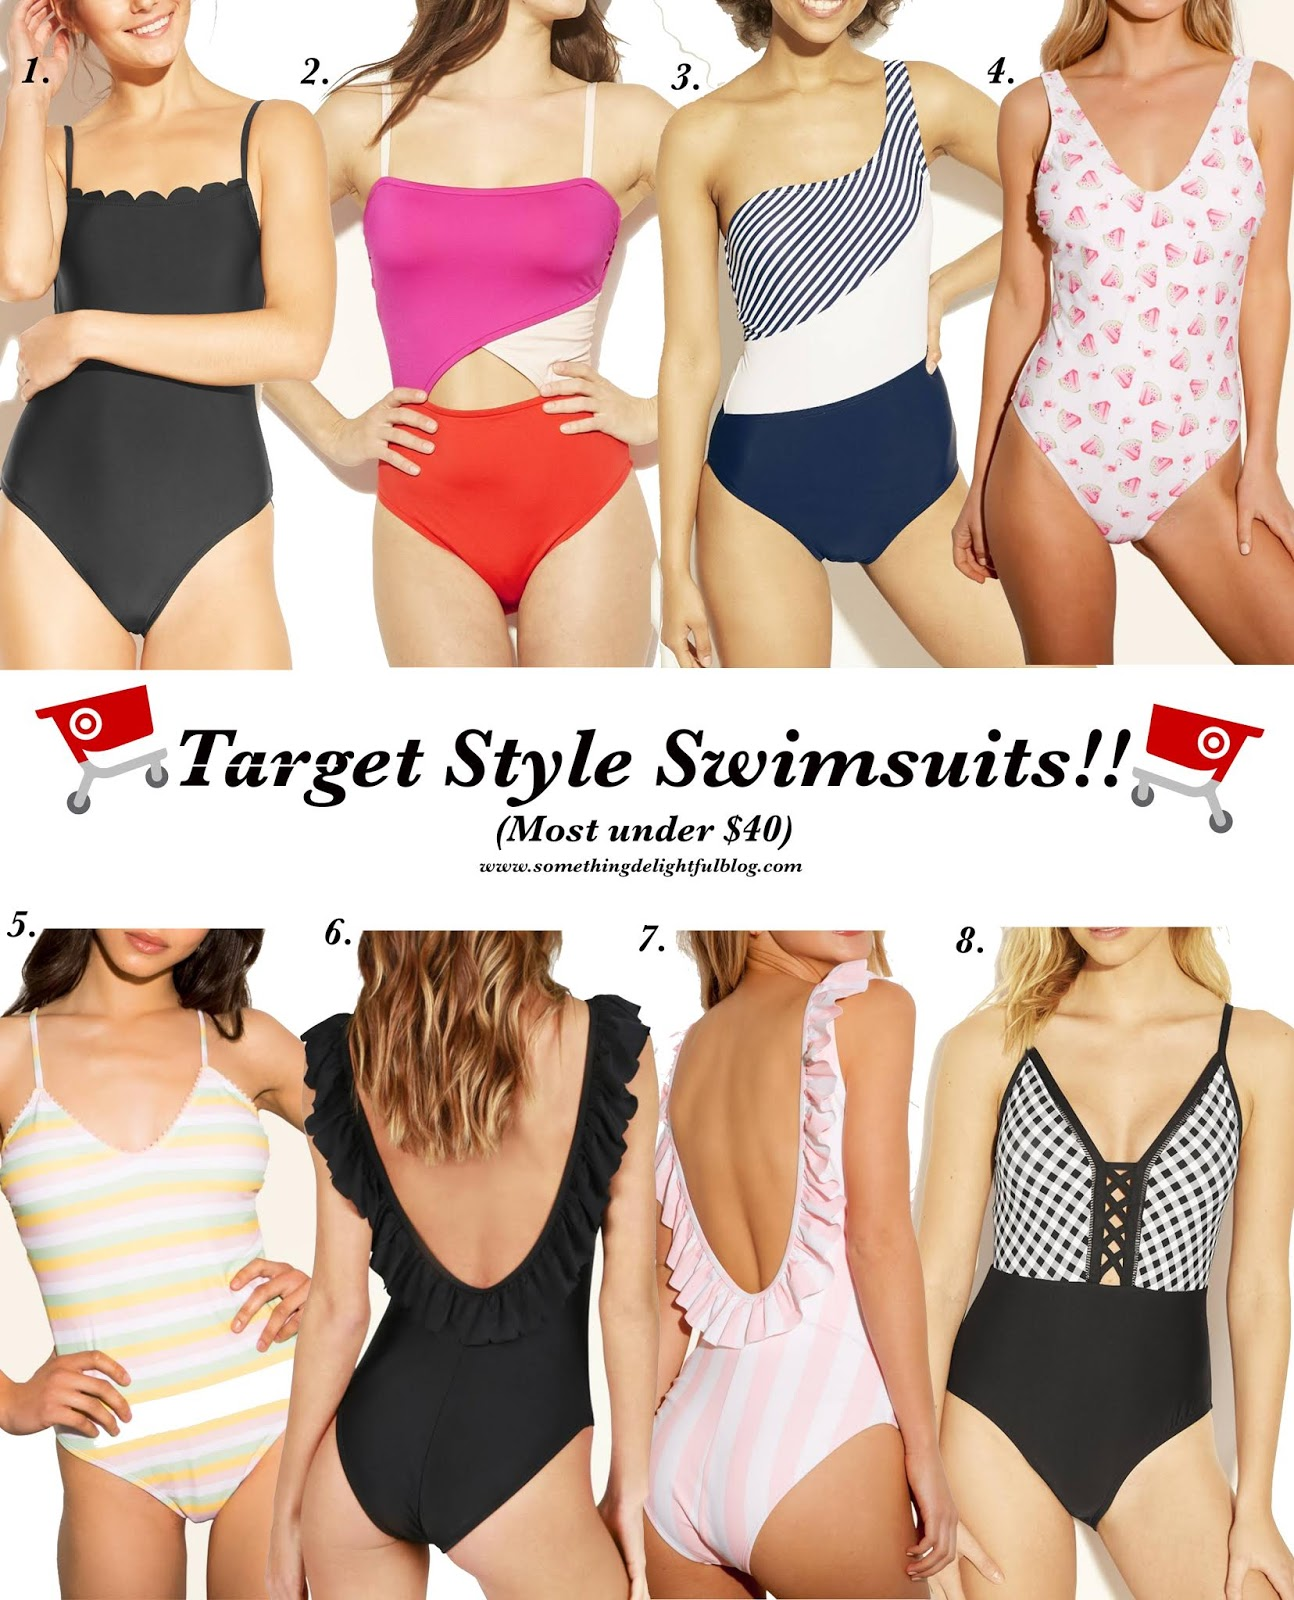 Target Style Swimsuits - Something Delightful Blog